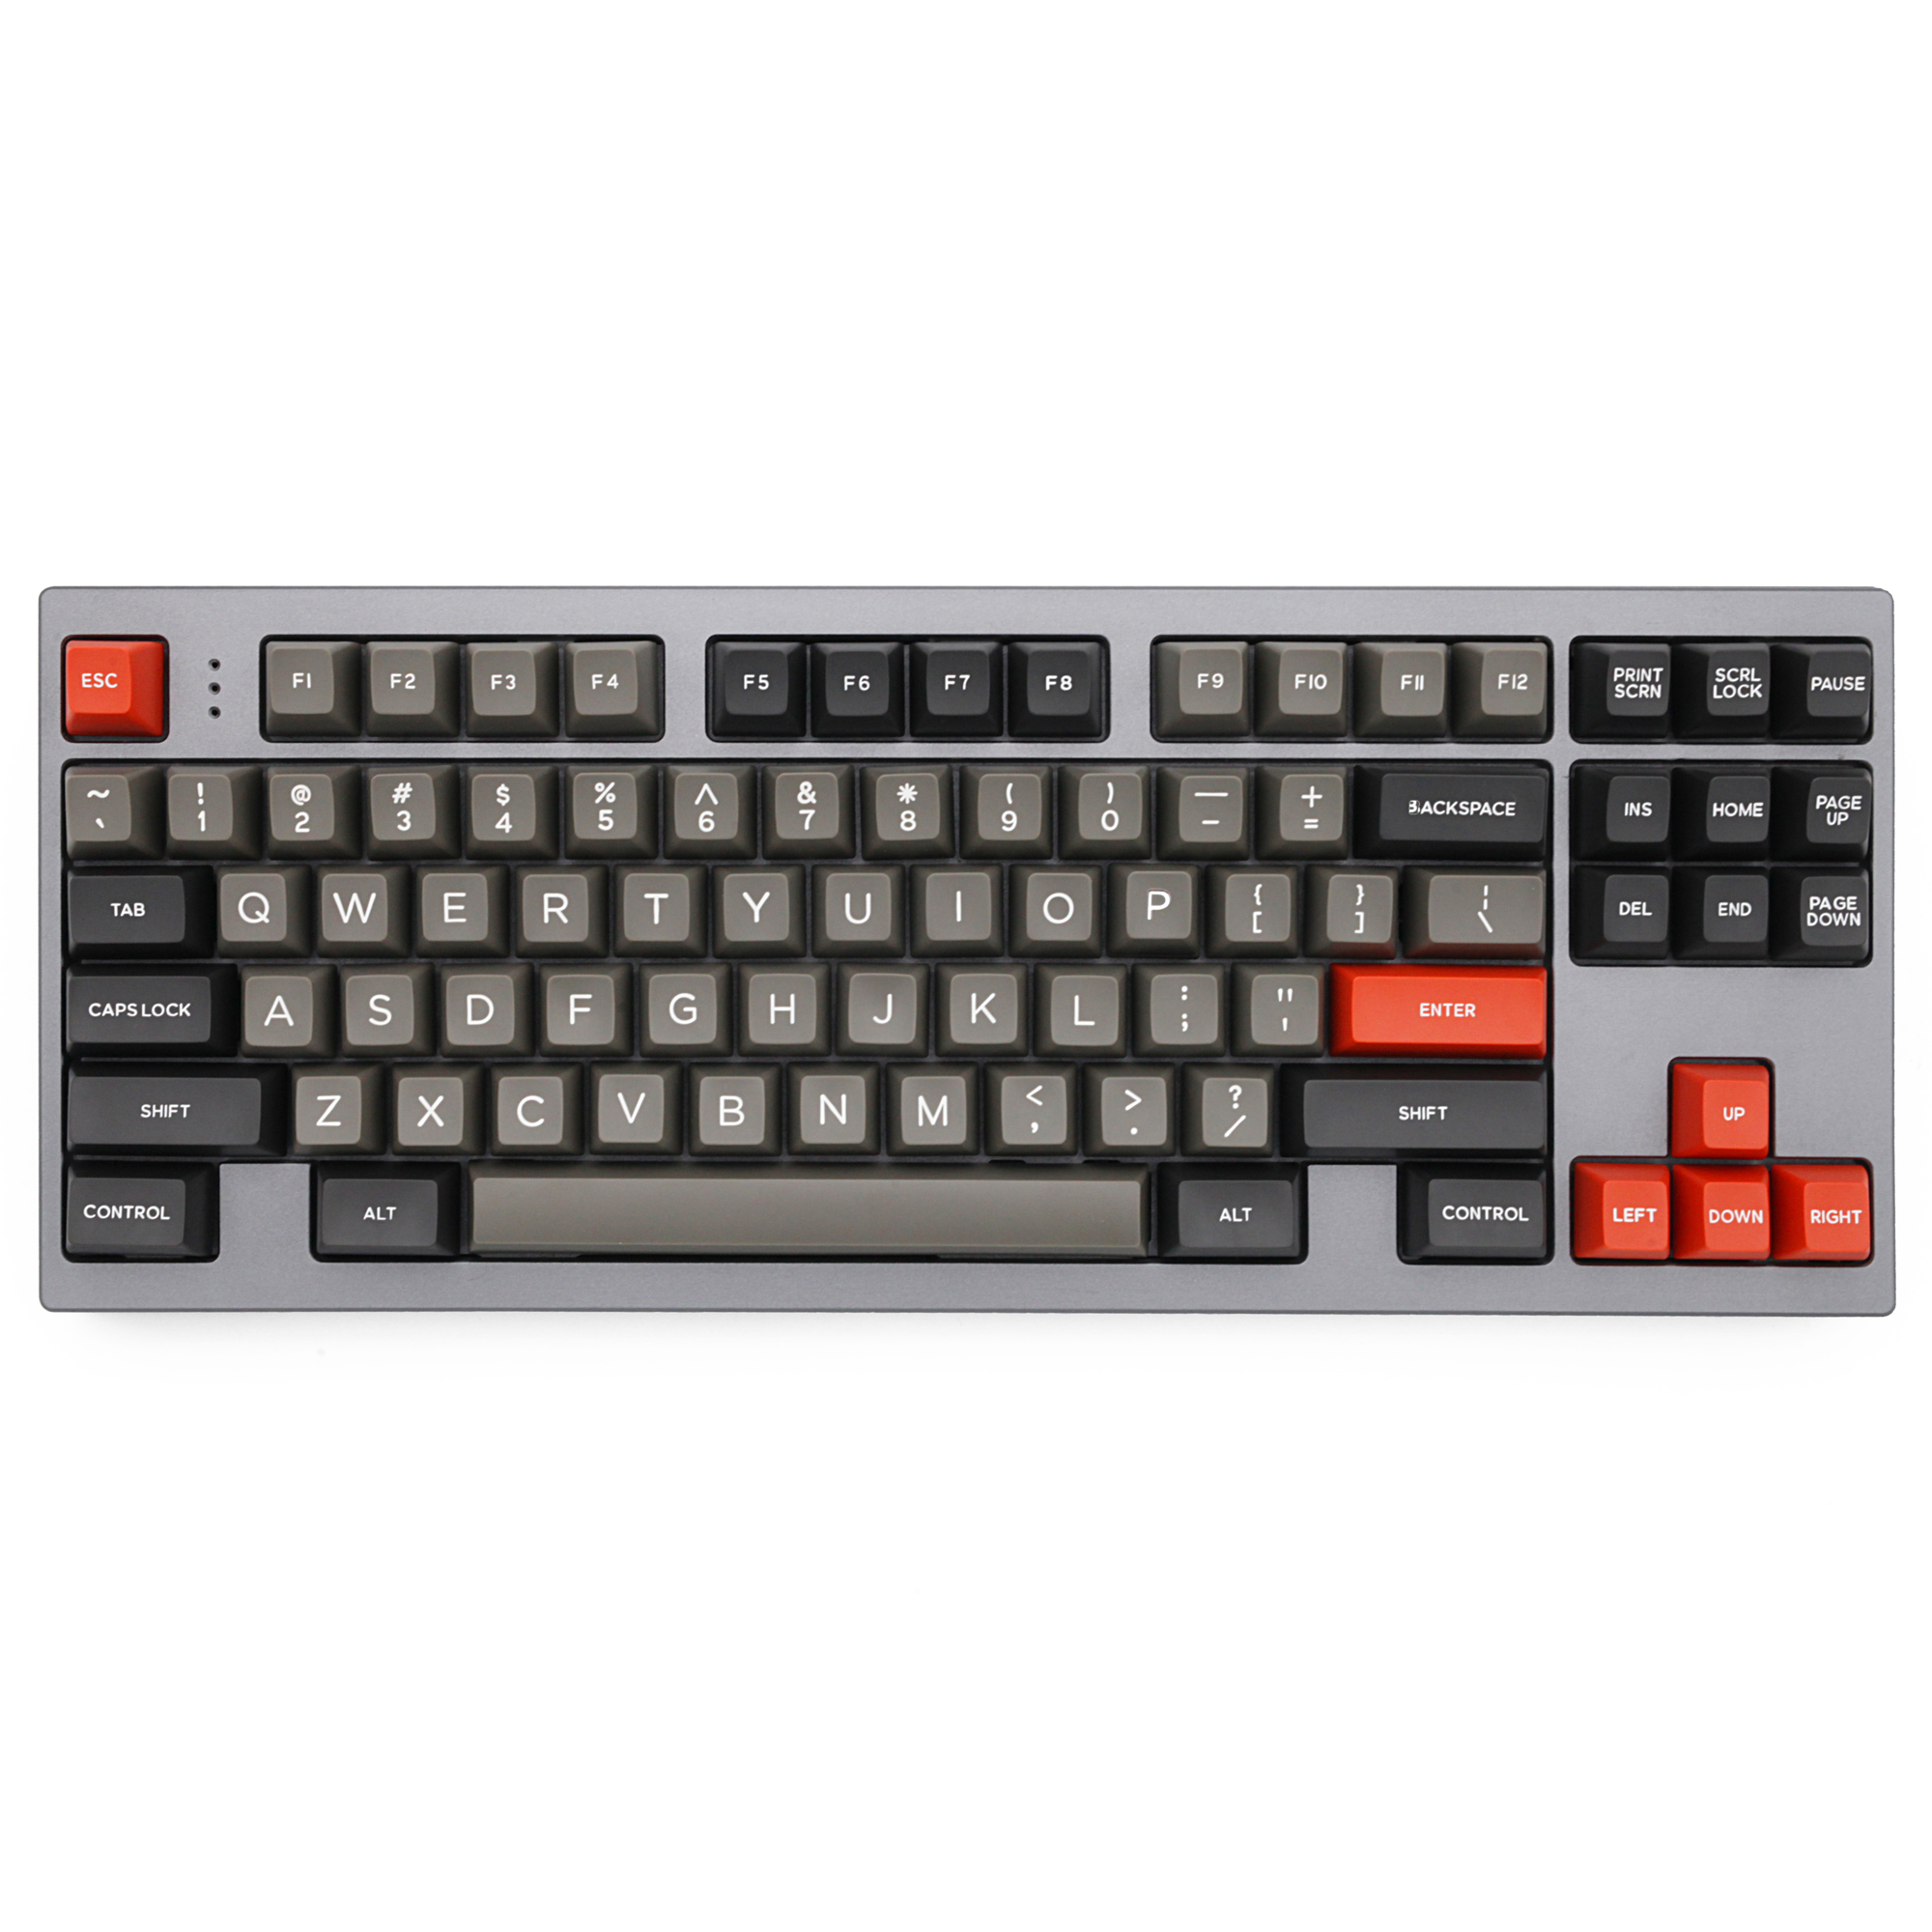 Domikey SA Abs Doubleshot Keycap Classic Dolch SA Profile For Mx Stem Keyboard Poker 87 104 Gh60 Xd64 Xd68 Xd84 Xd96 Xd75 Xd87